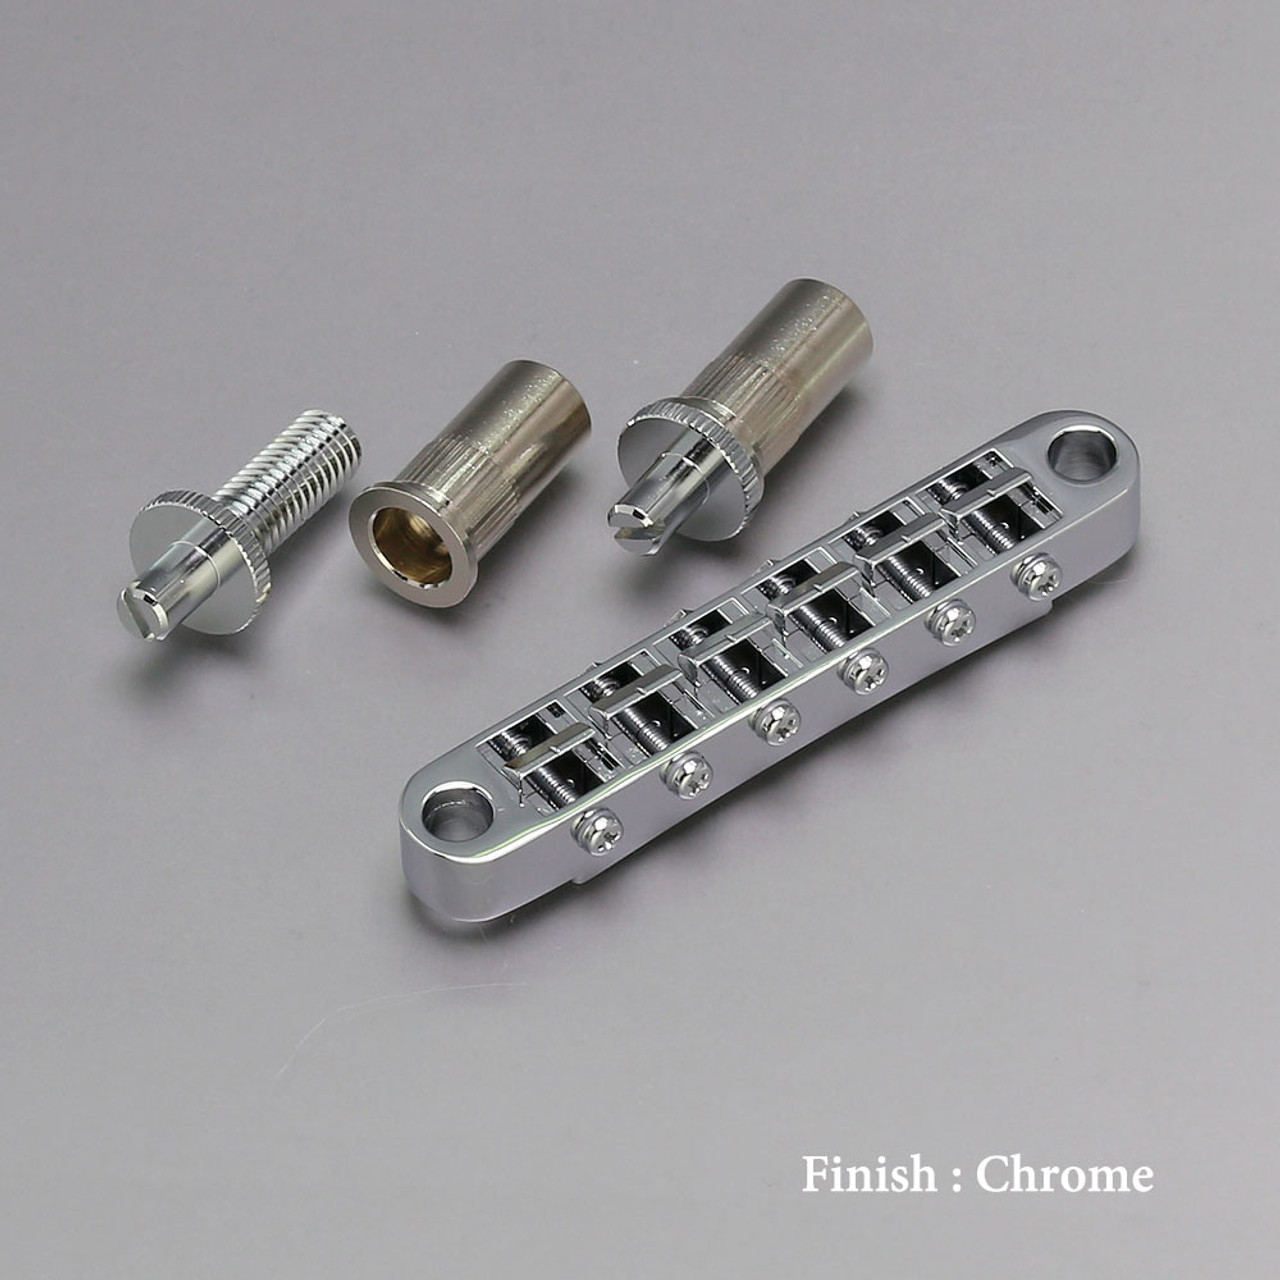 Gotoh GE103B-T - Nashville-style Tune-o-matic Bridge (choose finish)